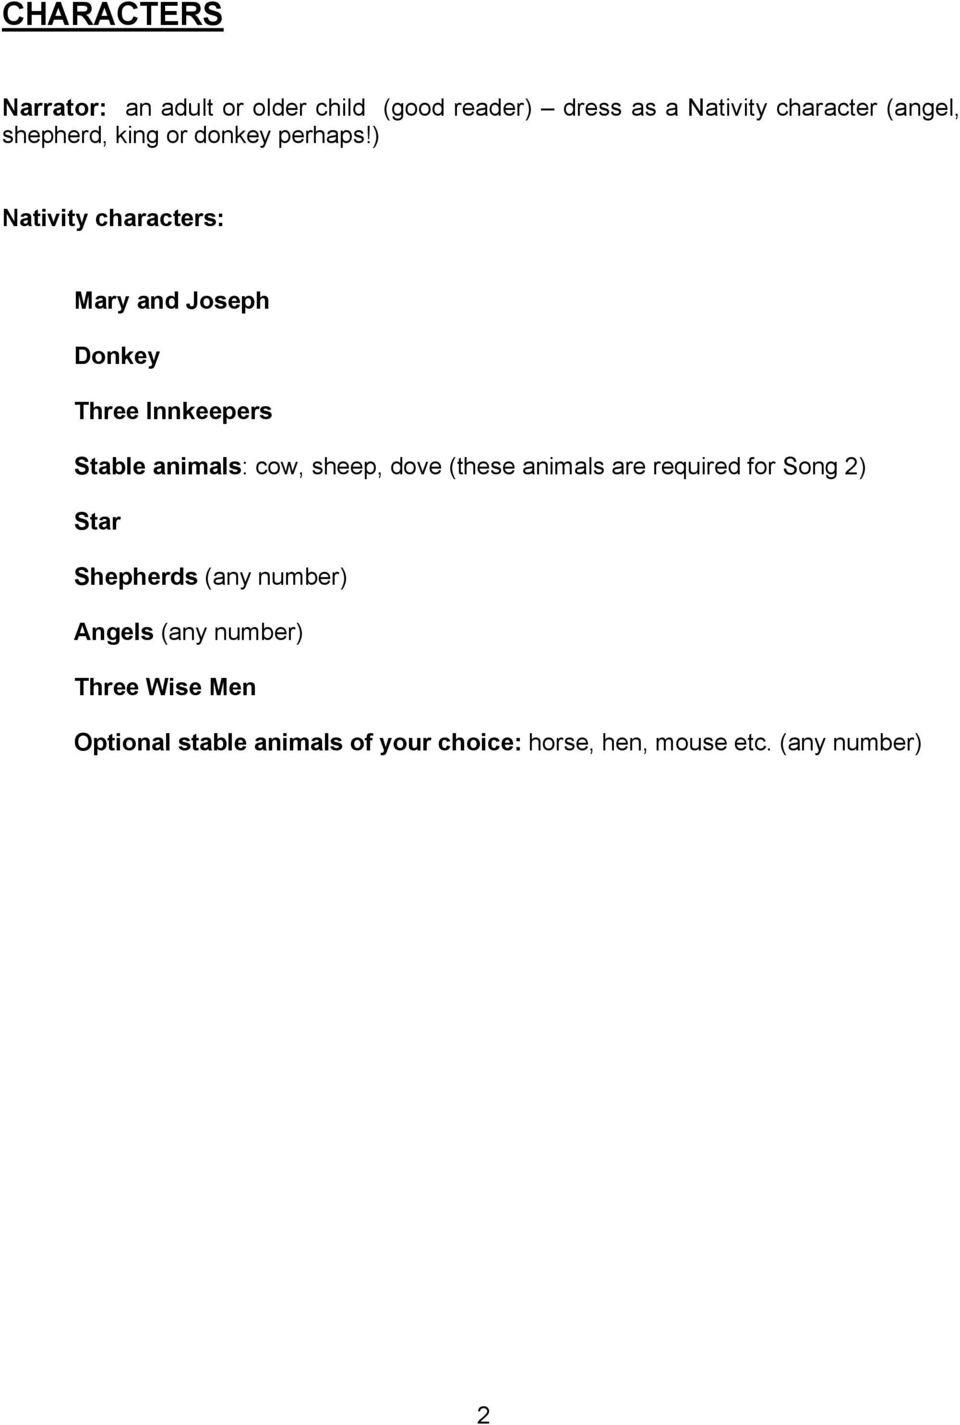 ) Nativity characters: Mary and Joseph Donkey Three Innkeepers Stable animals: cow, sheep, dove